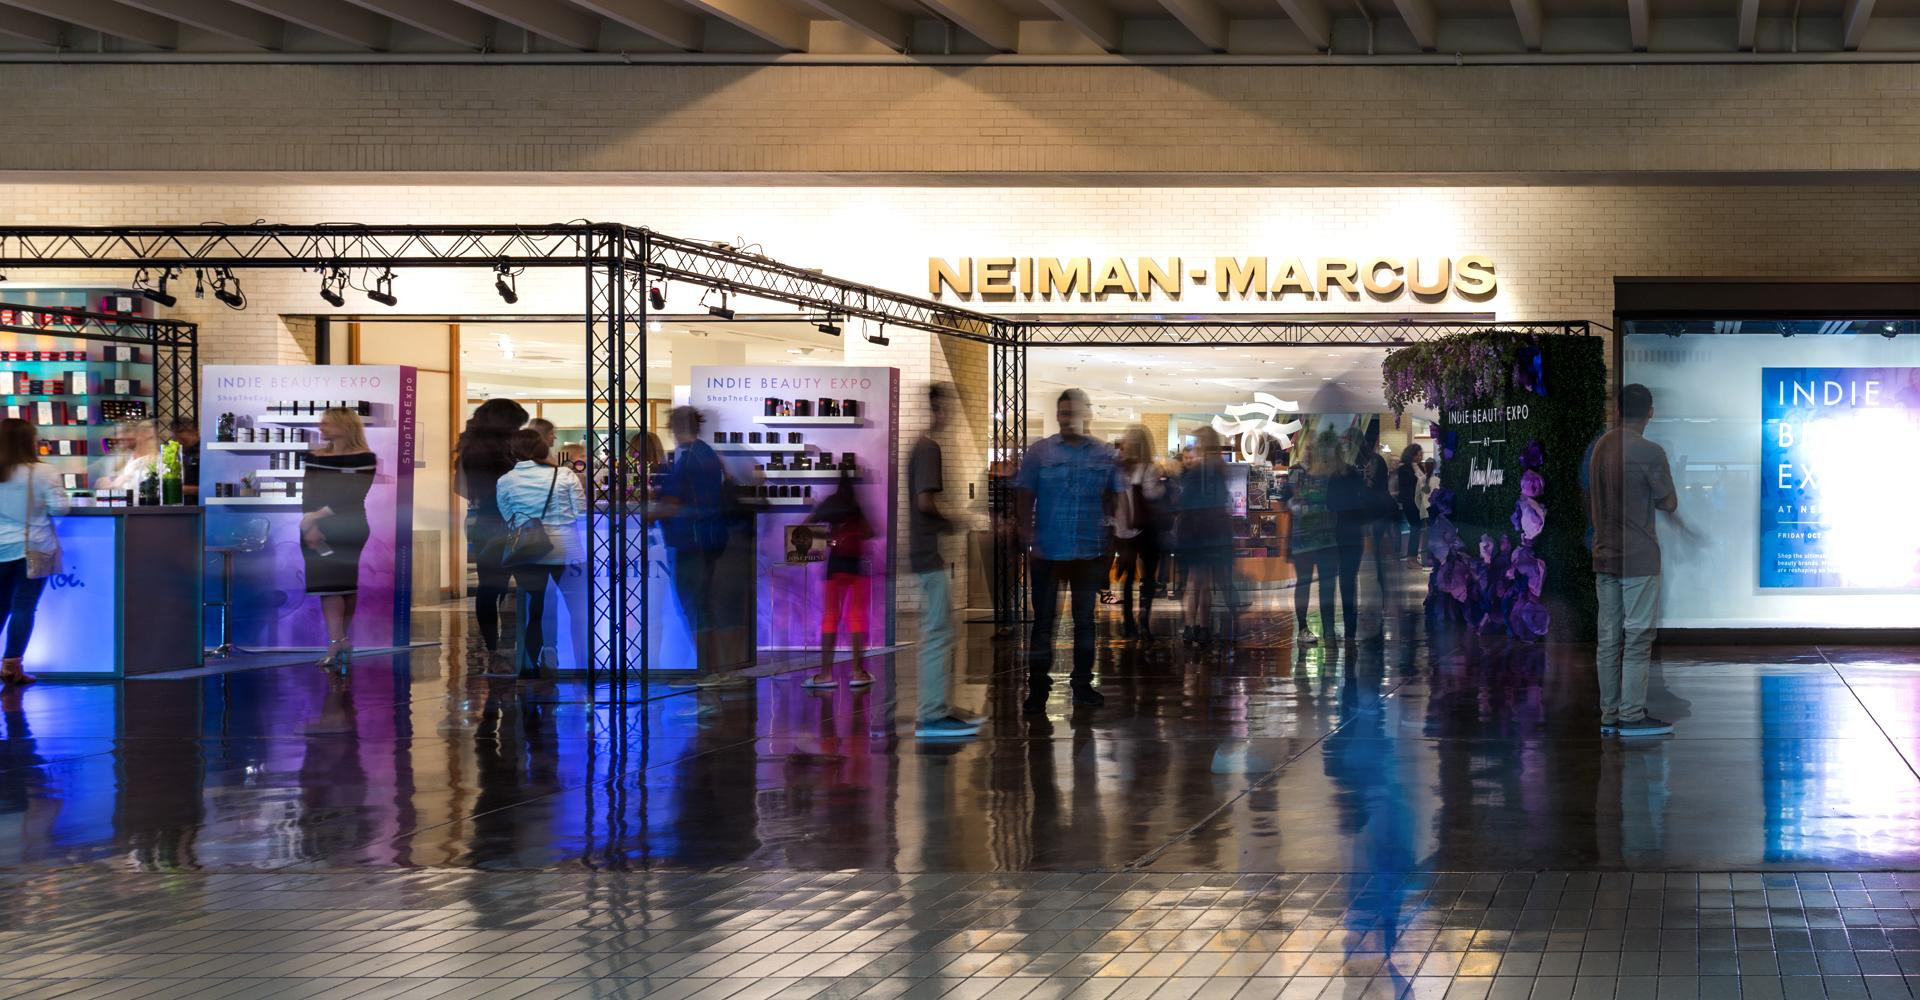 IBE And Neiman Marcus Take Their Partnership To The Next Level With An Upcoming Event And Updated Collection